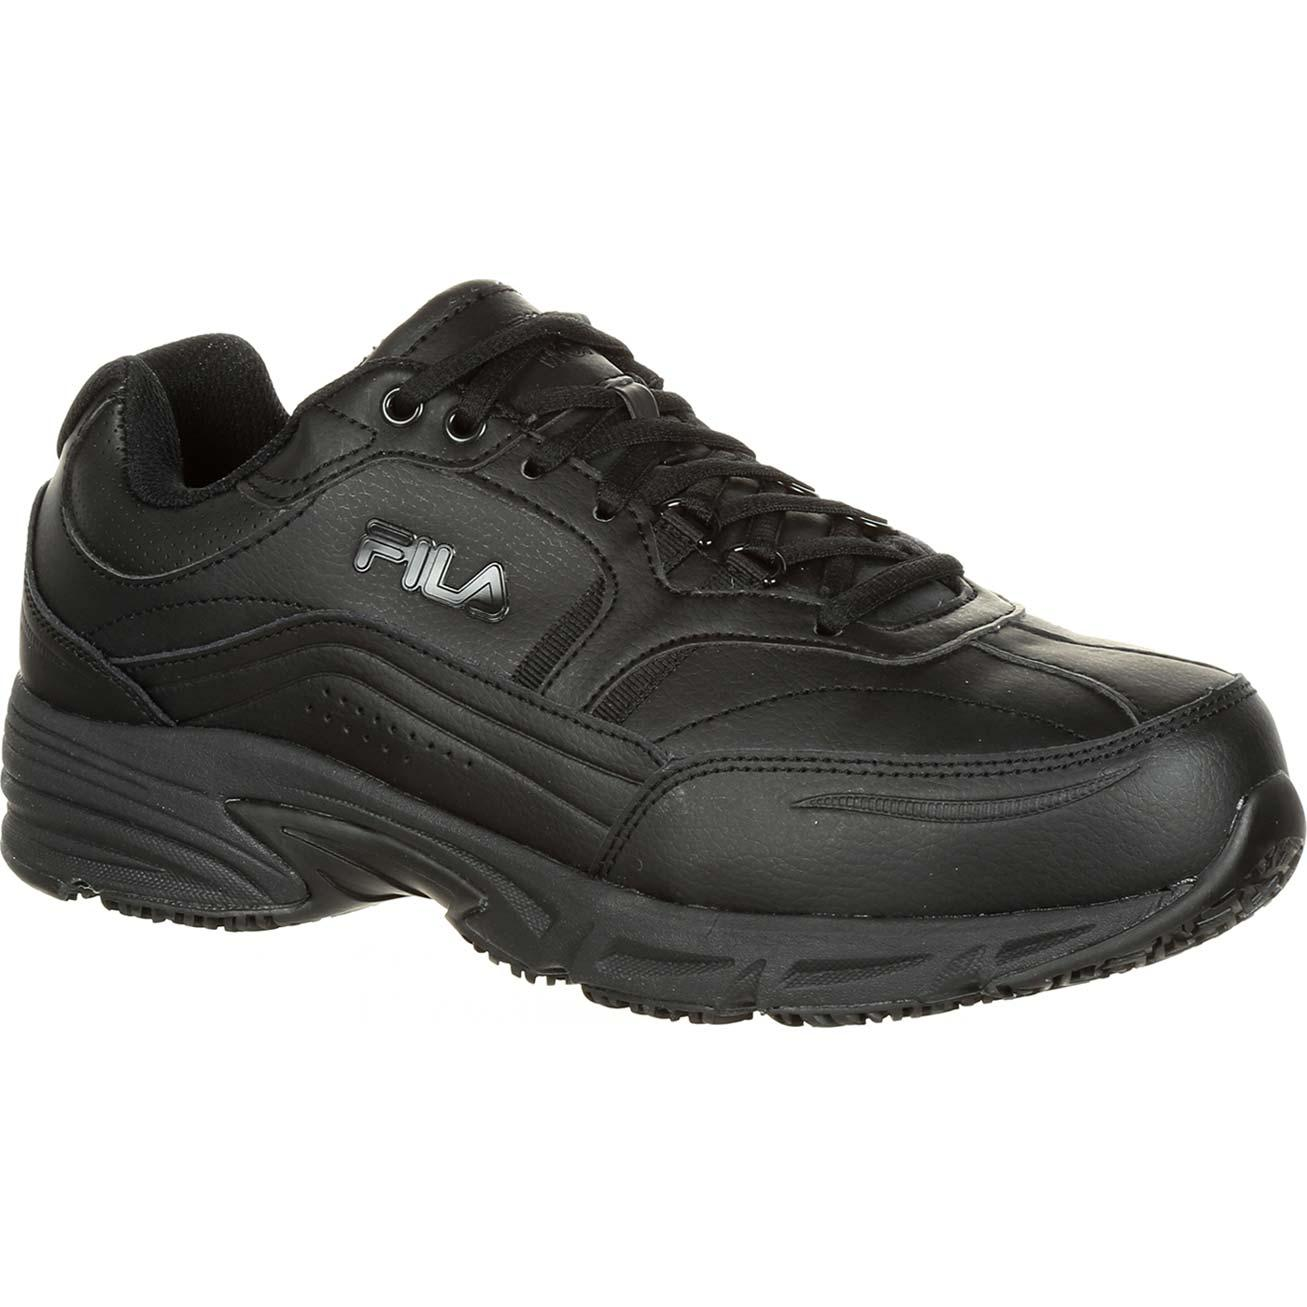 c66c160e019c Fila Memory Workshift Steel Toe Slip-Resistant Work Athletic ShoeFila Memory  Workshift Steel Toe Slip-Resistant Work Athletic Shoe